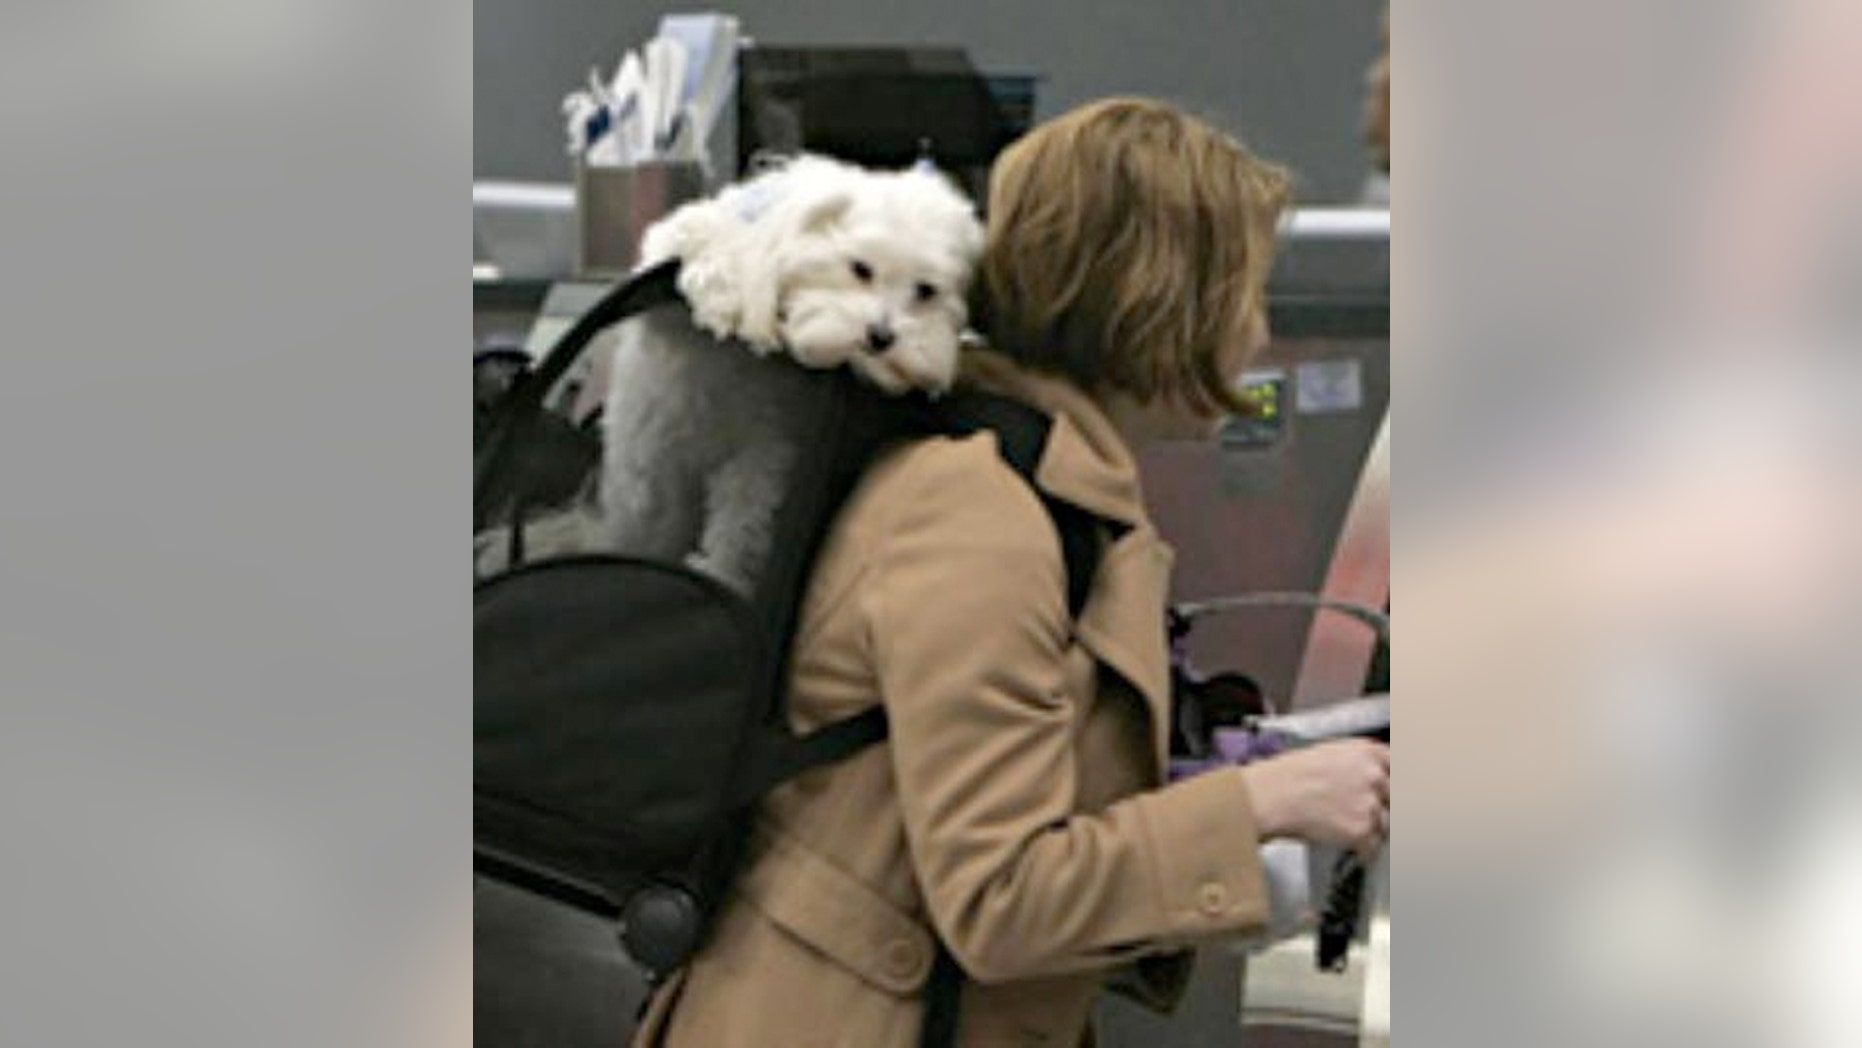 People are gaming the system so pets get special seating during flights.